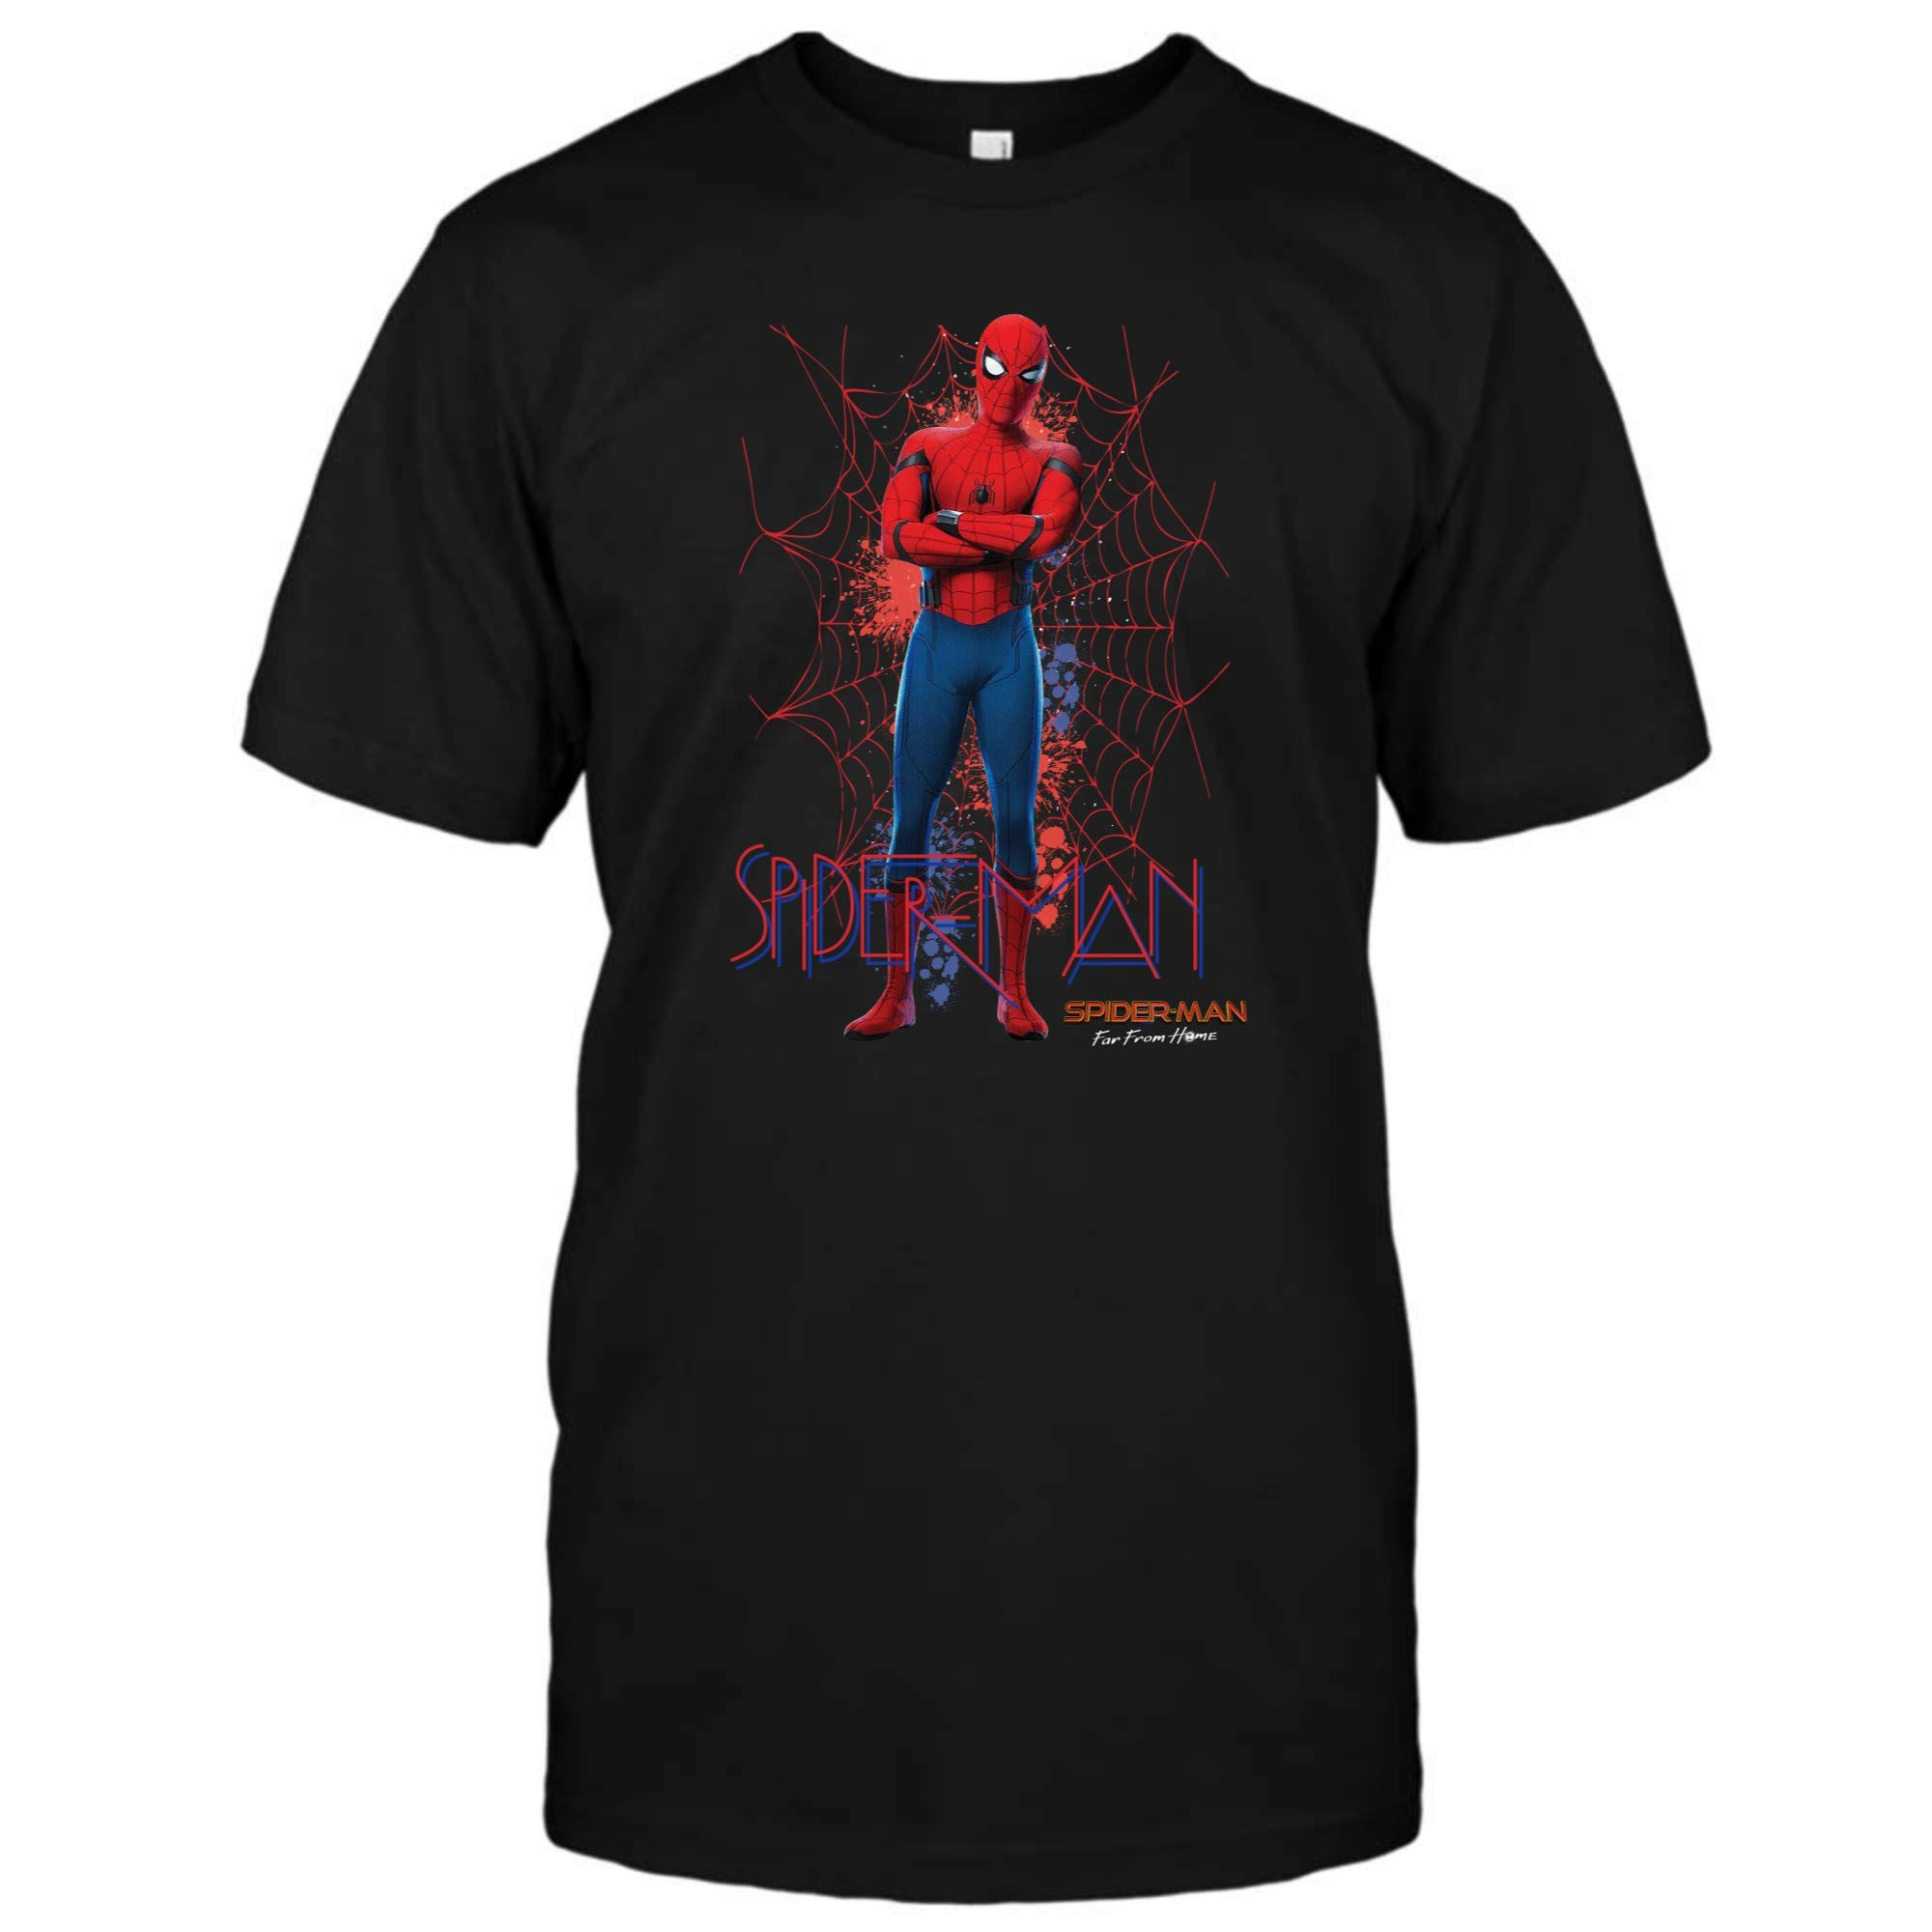 Spiderman Shirt Spiderman Far From Home Painted Logo Swing Poster Tshirt 1